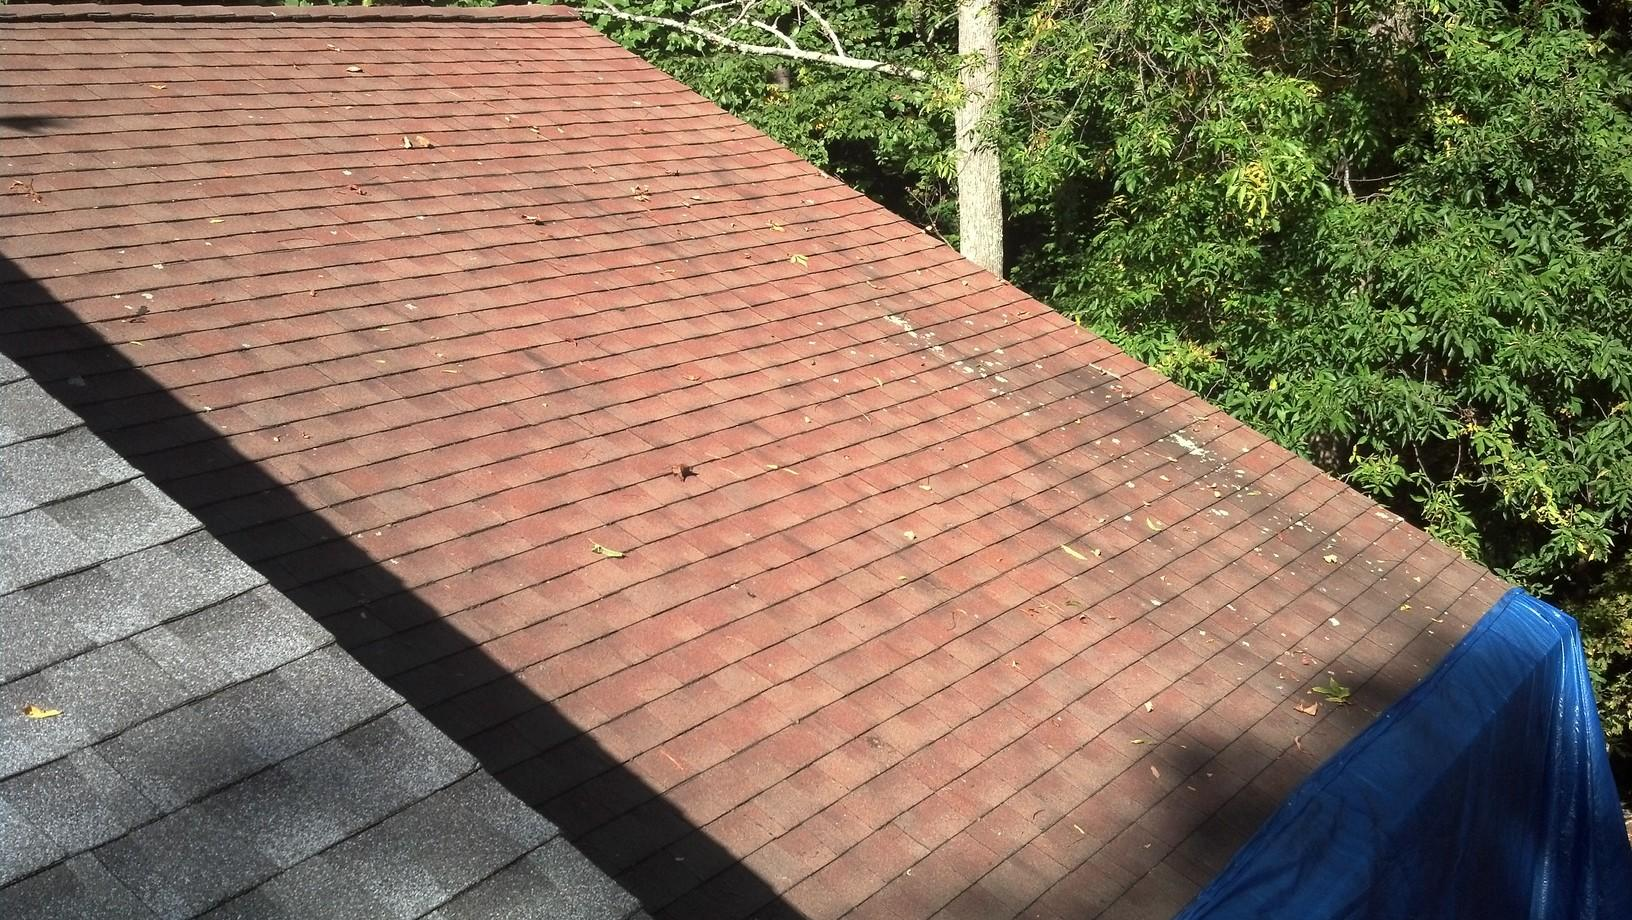 Roof Replacement in Ridgefield, CT - Before Photo